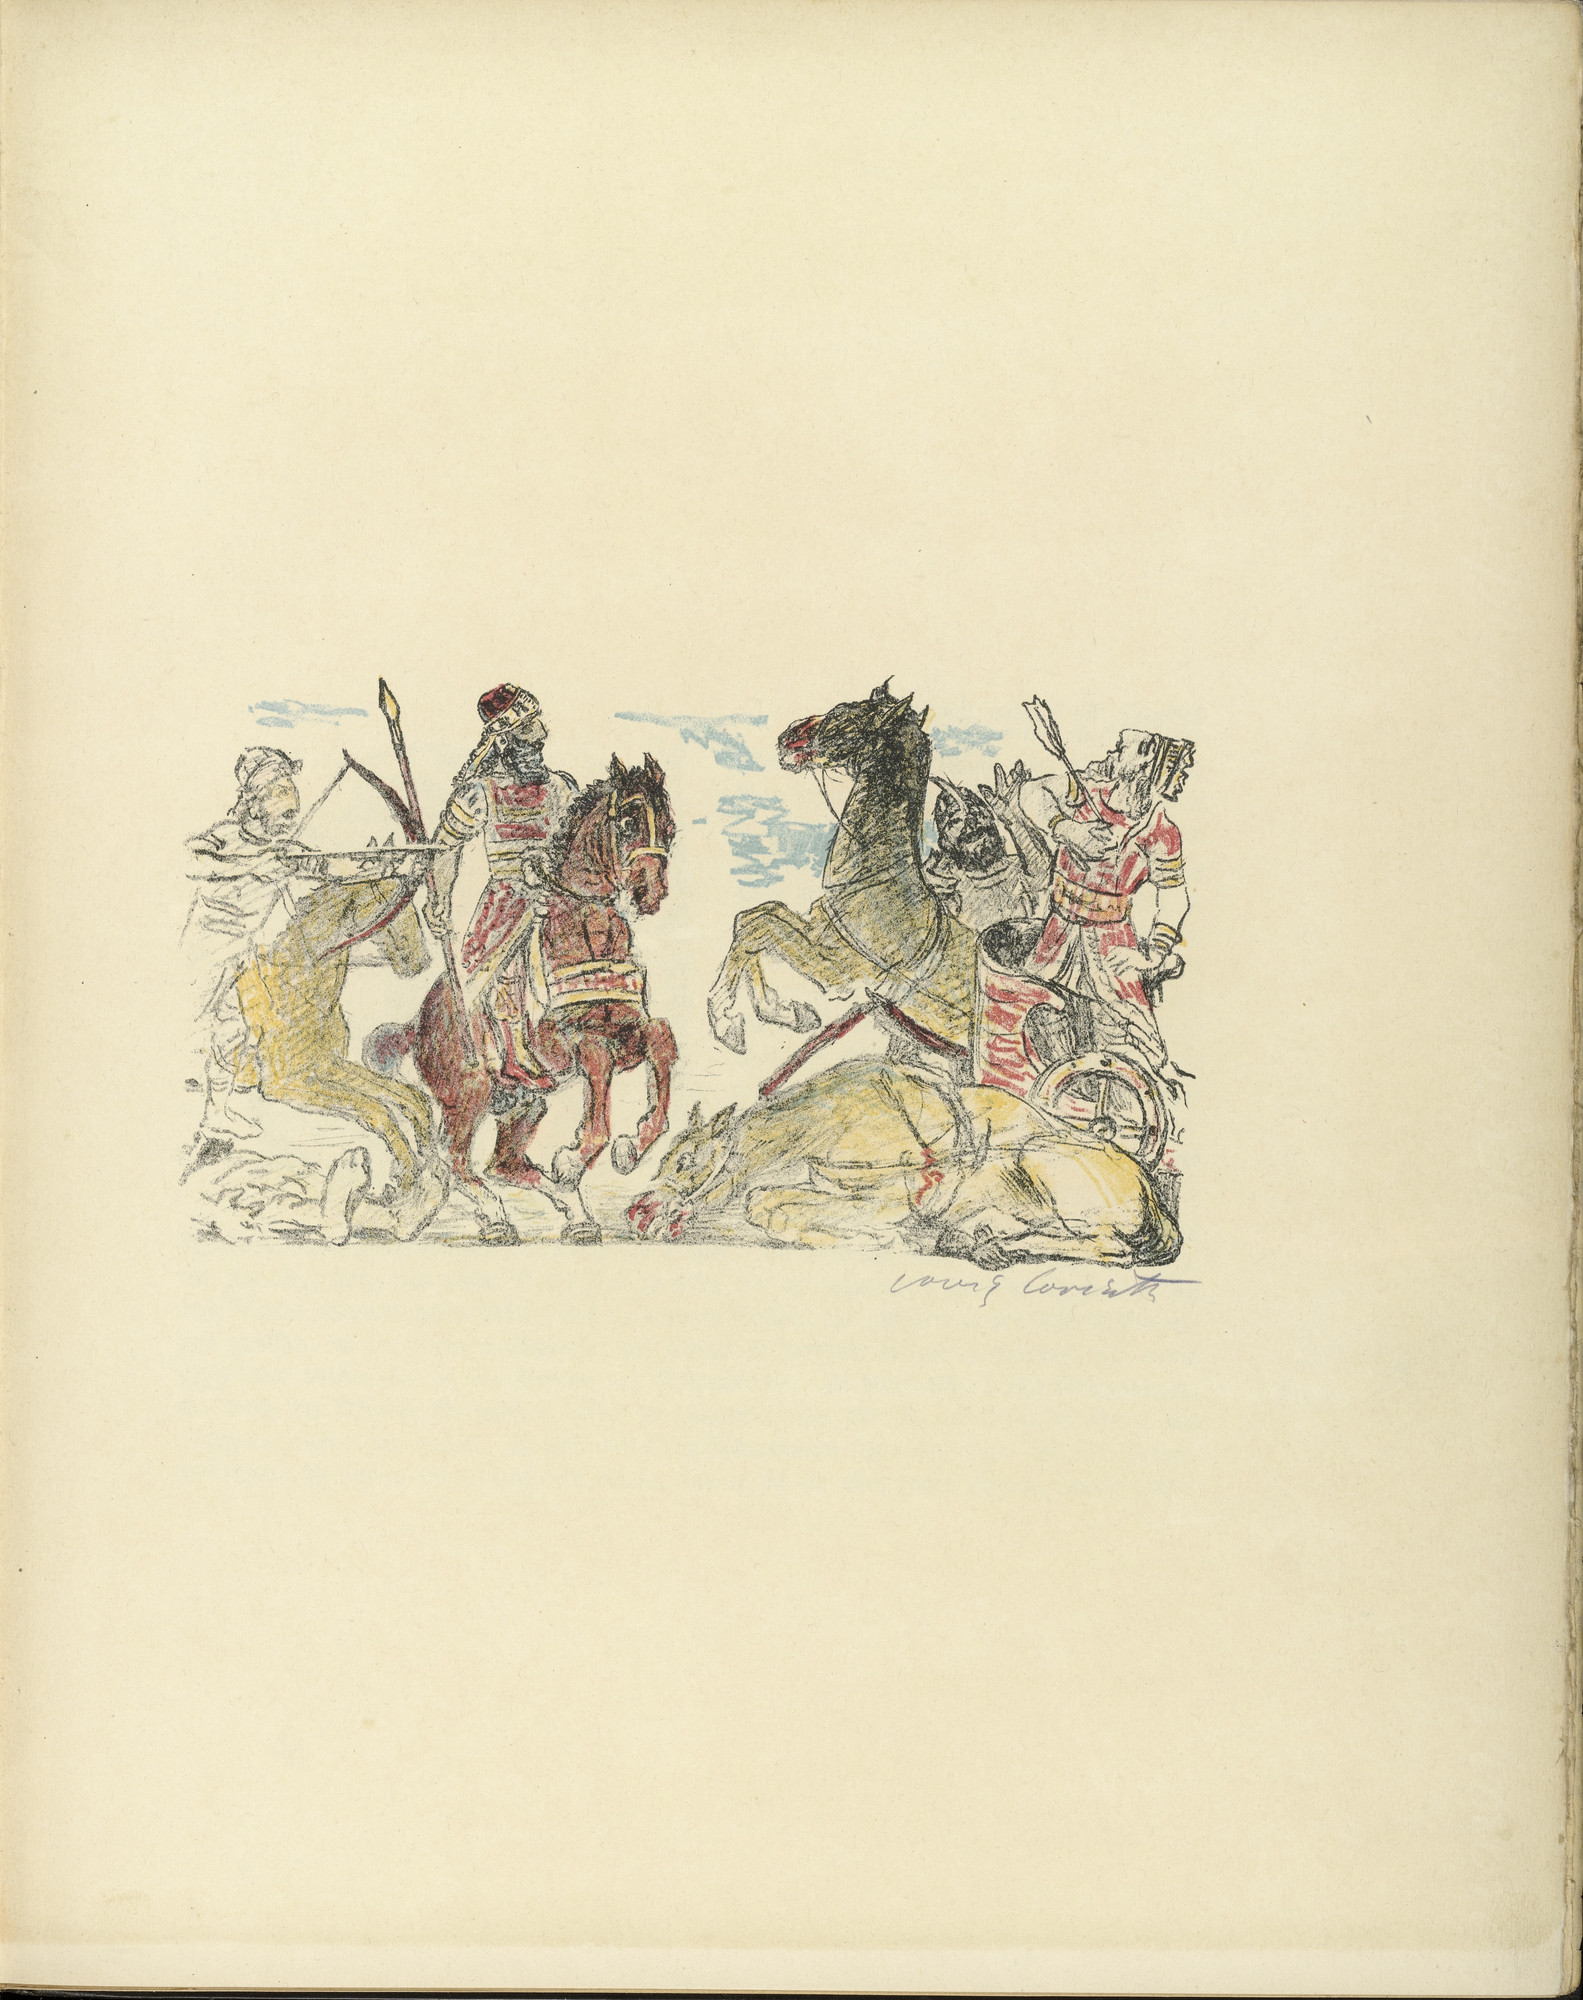 Lovis Corinth. Warrior Scene (Kriegerszene) (plate, folio 4) from Das Buch Judith (The Book of Judith). 1910